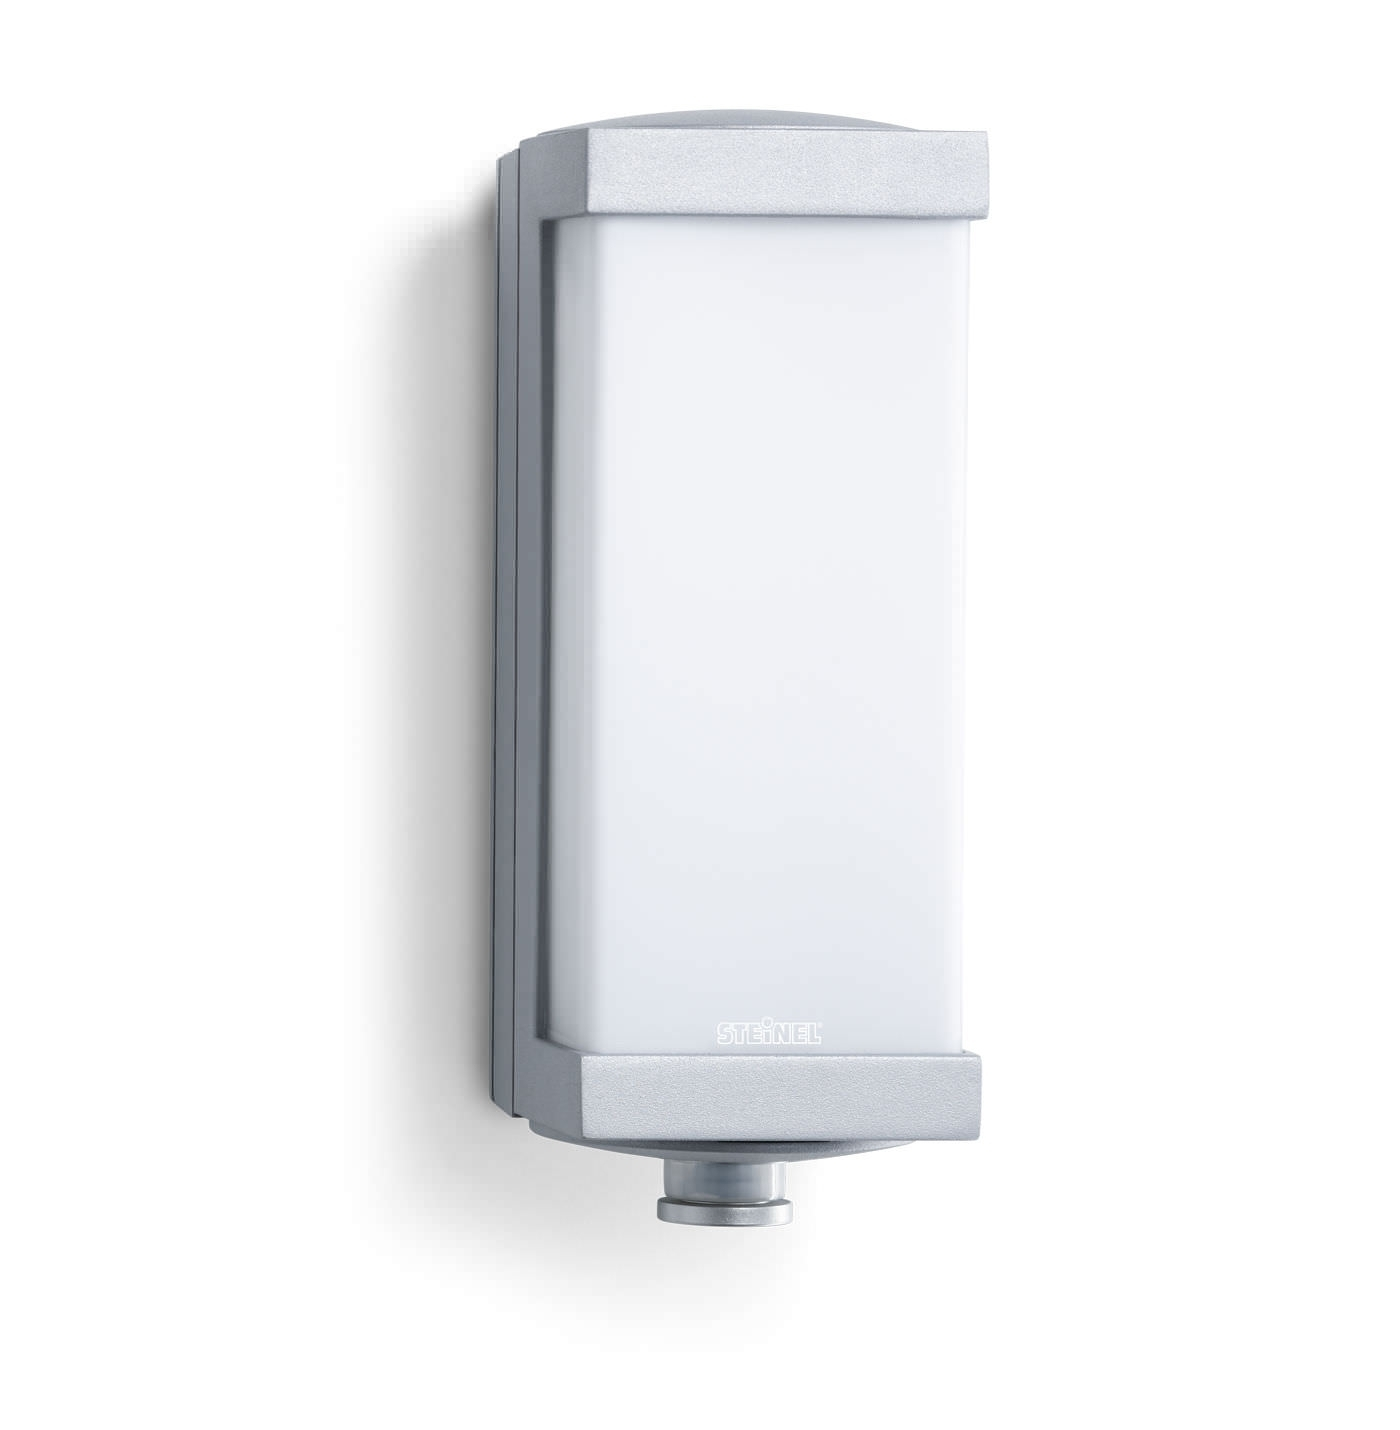 Wall Light: Popular Outdoor Wall Lights With Motion Sensor As Well With Regard To Eglo Lighting Sidney Outdoor Wall Lights With Motion Sensor (View 9 of 15)